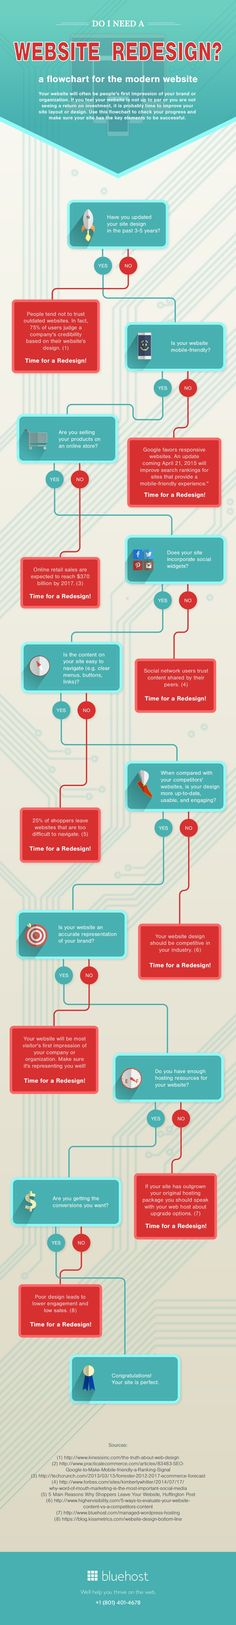 Do You Need a Website Redesign This Flowchart Will Tell You